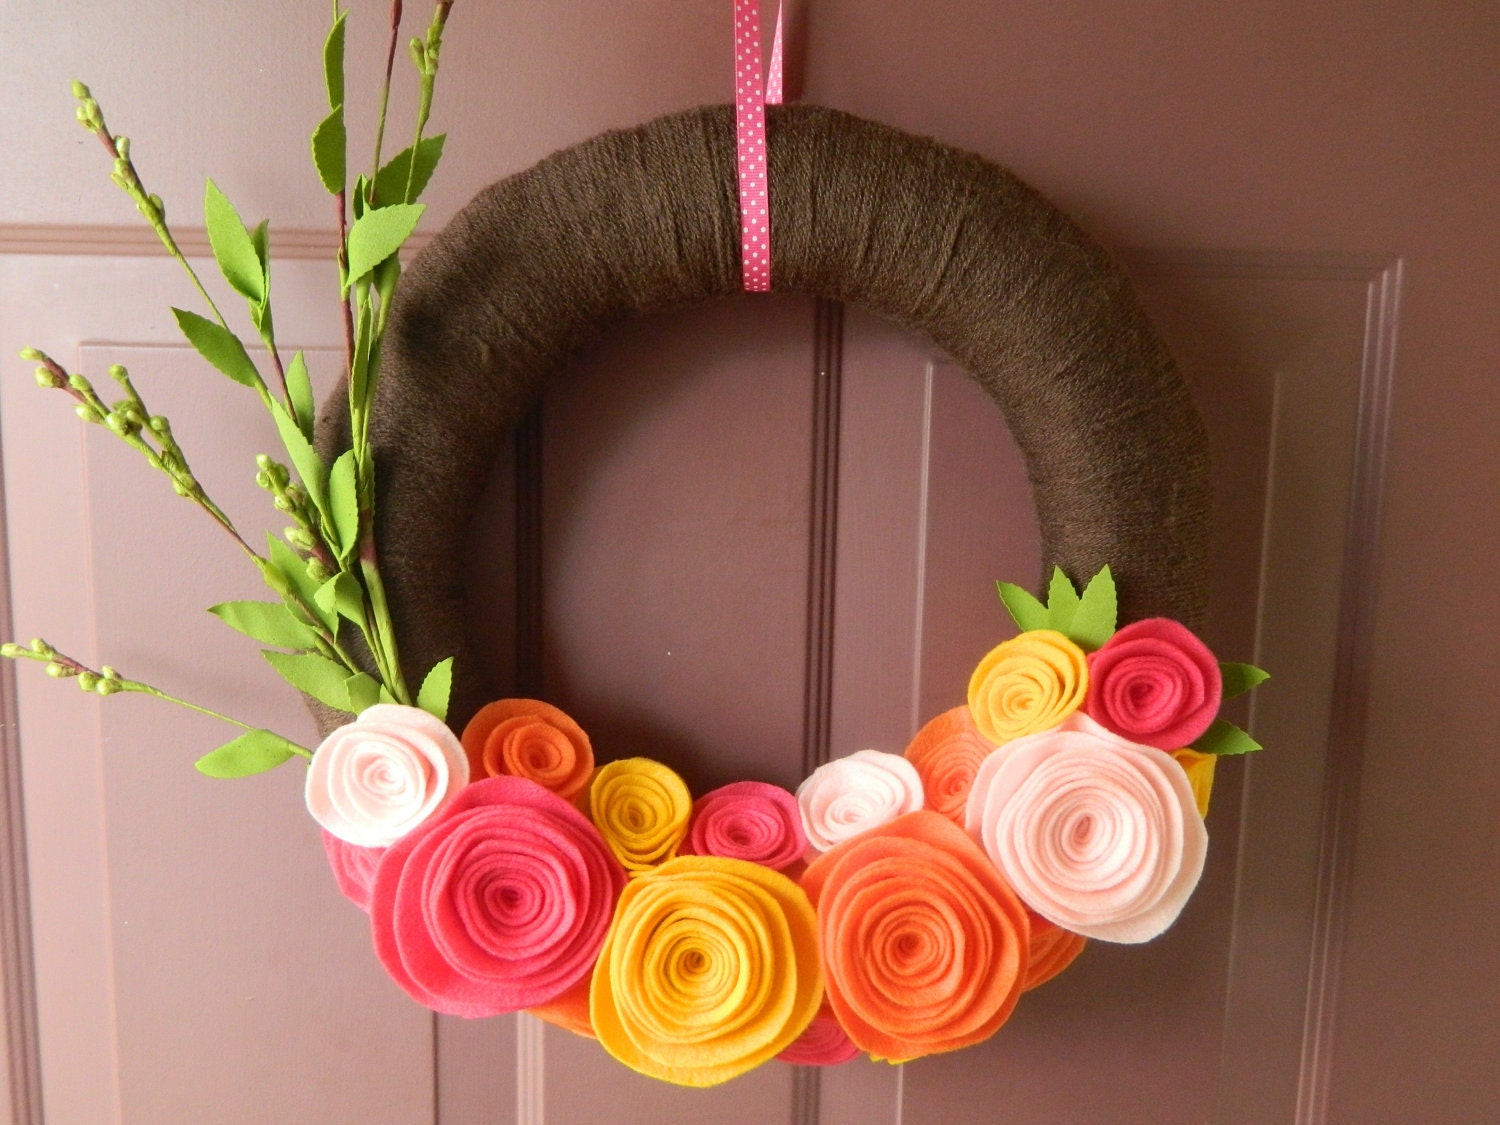 Handmade decorative item for Handmade things for home